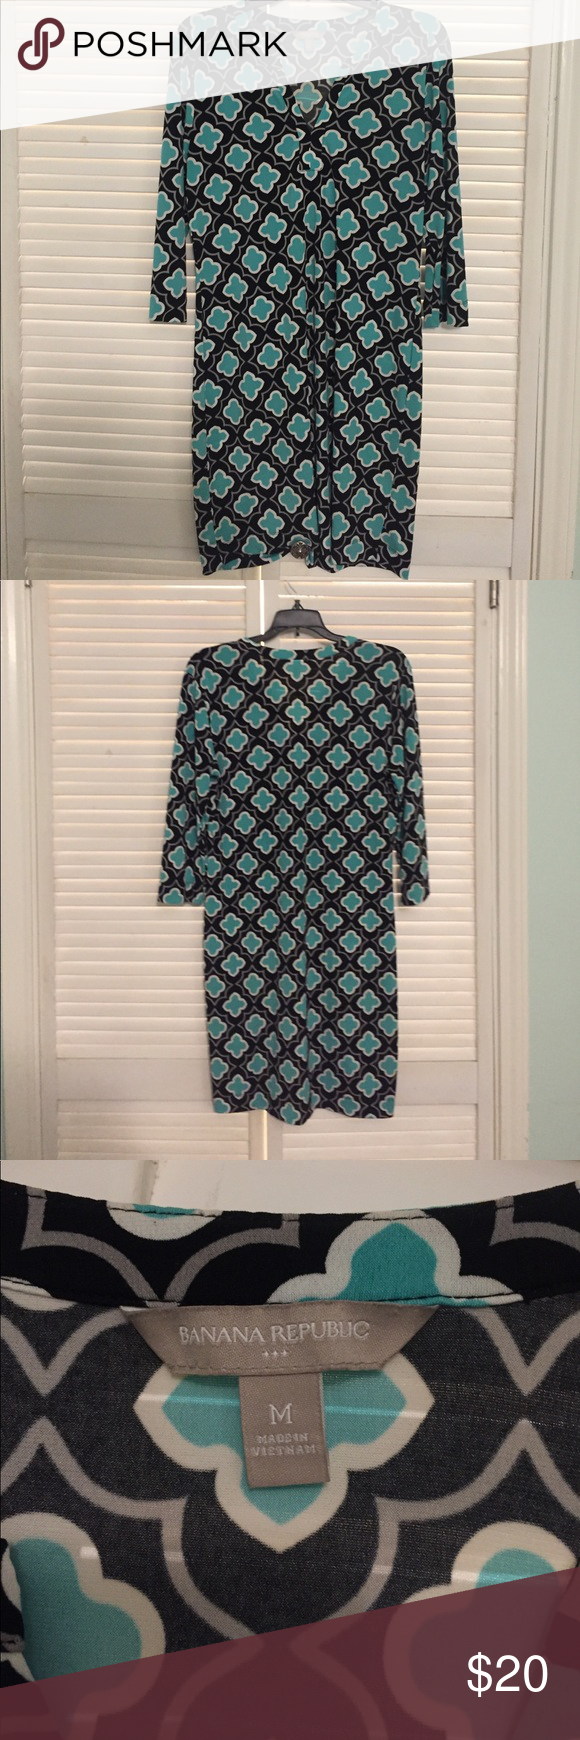 3/4 Sleeve Blue and Black dress Really nice 3/4 sleeve Banana Republic black and blue printed dress, great for the spring and fall! Banana Republic Dresses Midi